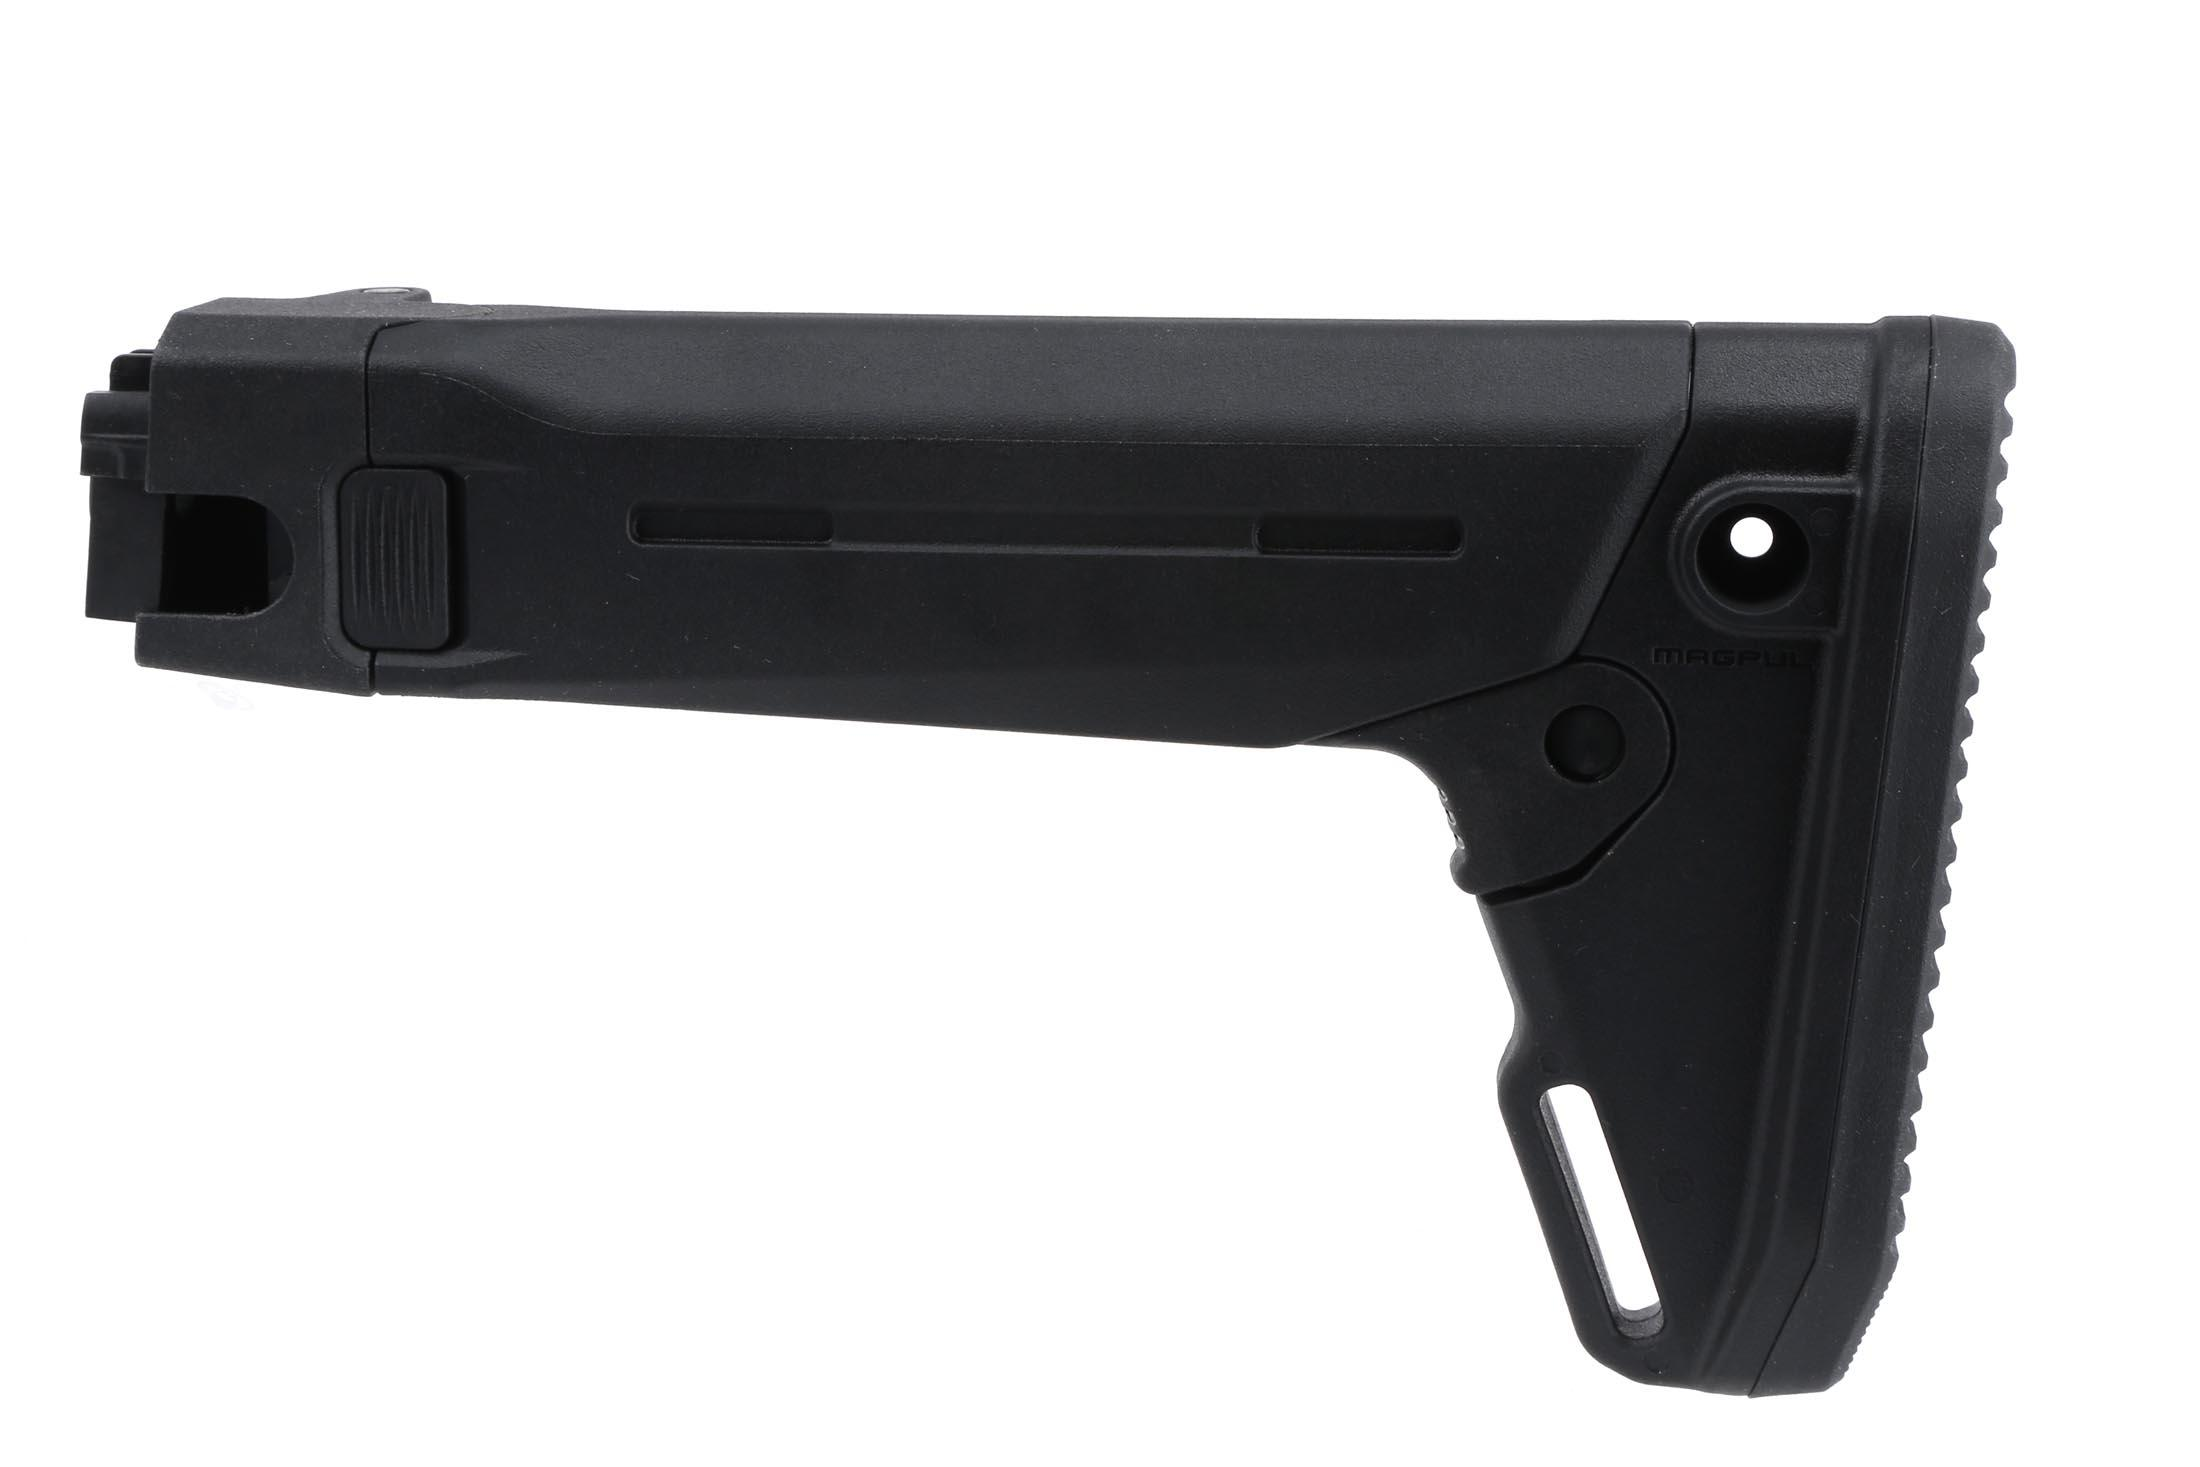 The Zhukov-s adjustable AK-47 stock has 5 positions of adjustability to fit your length of pull